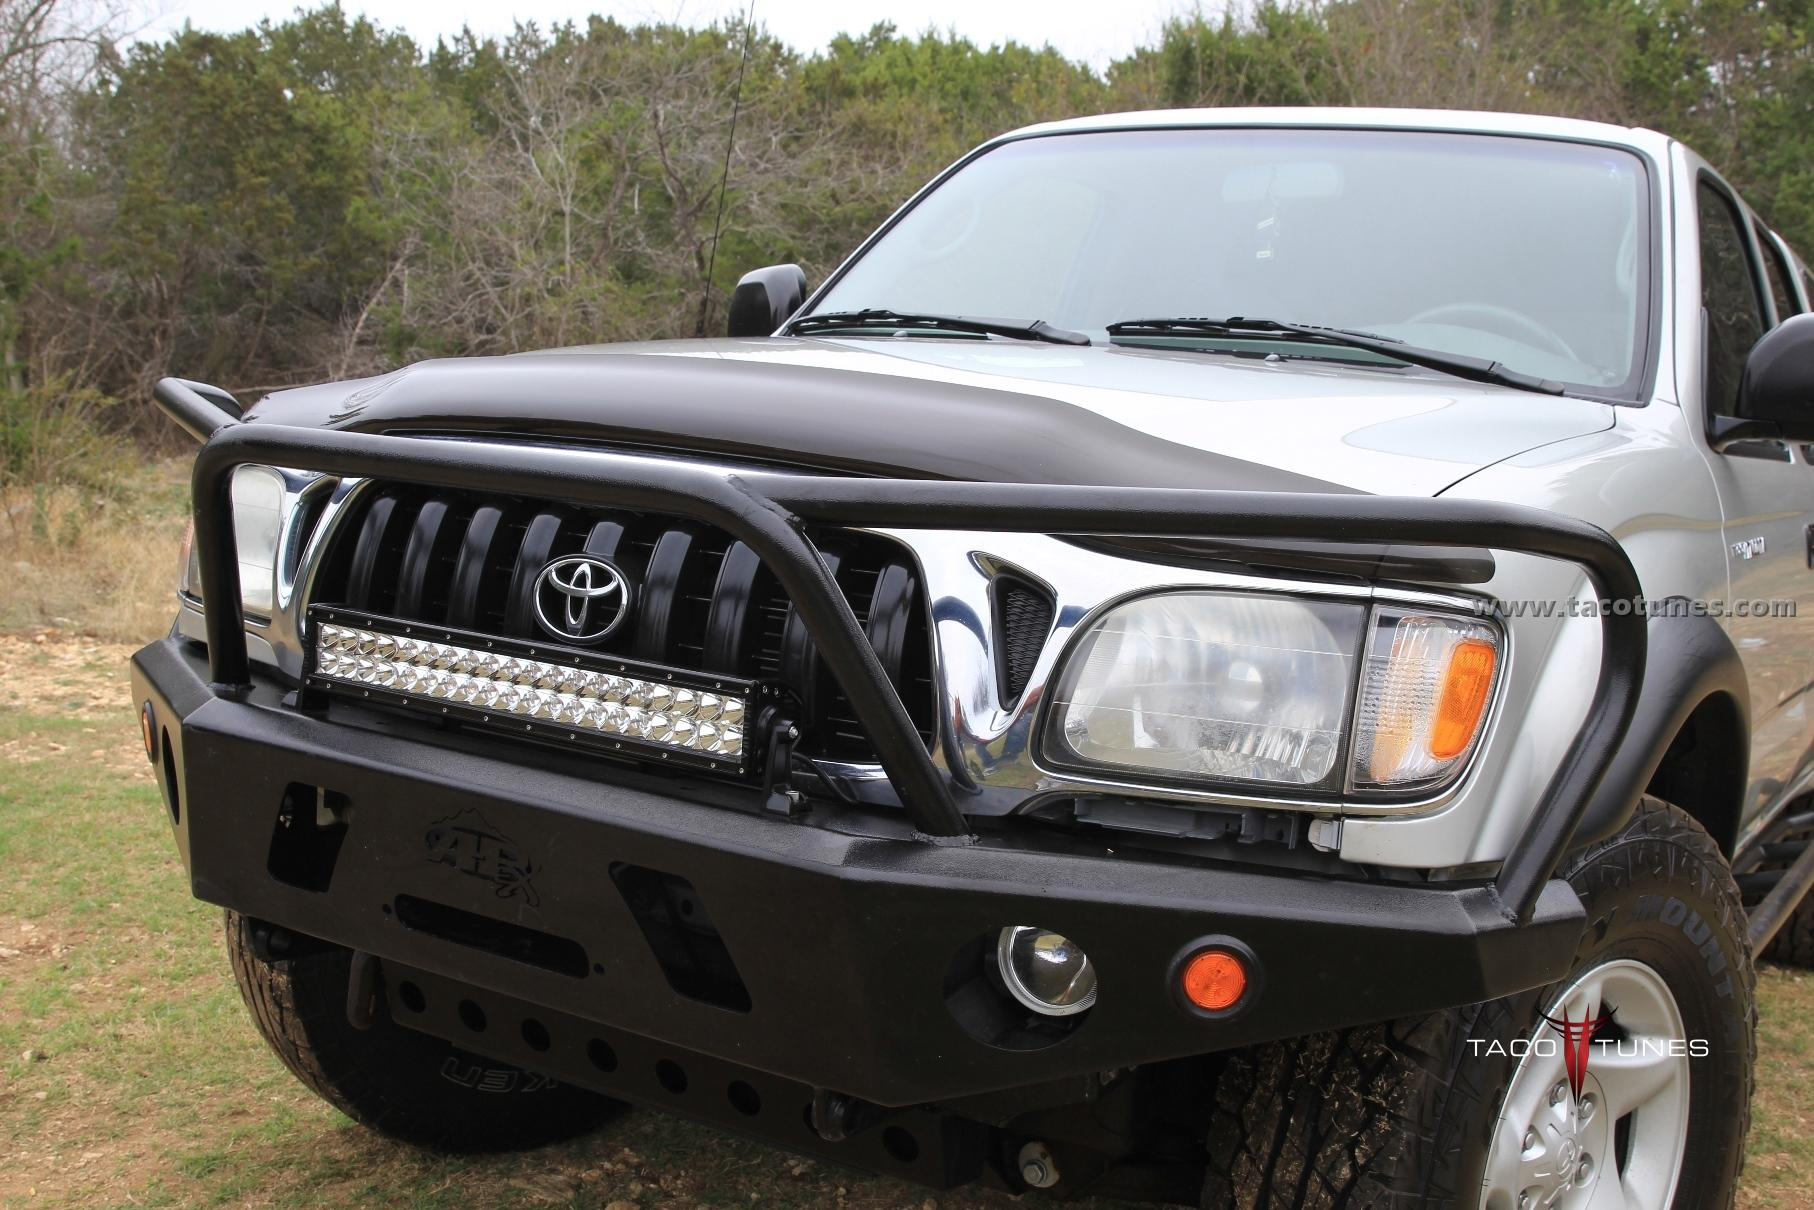 tacoma stereo wiring diagram 2003 tacoma stereo wiring 2003 toyota tacoma double cab 4x4 stereo installation ...